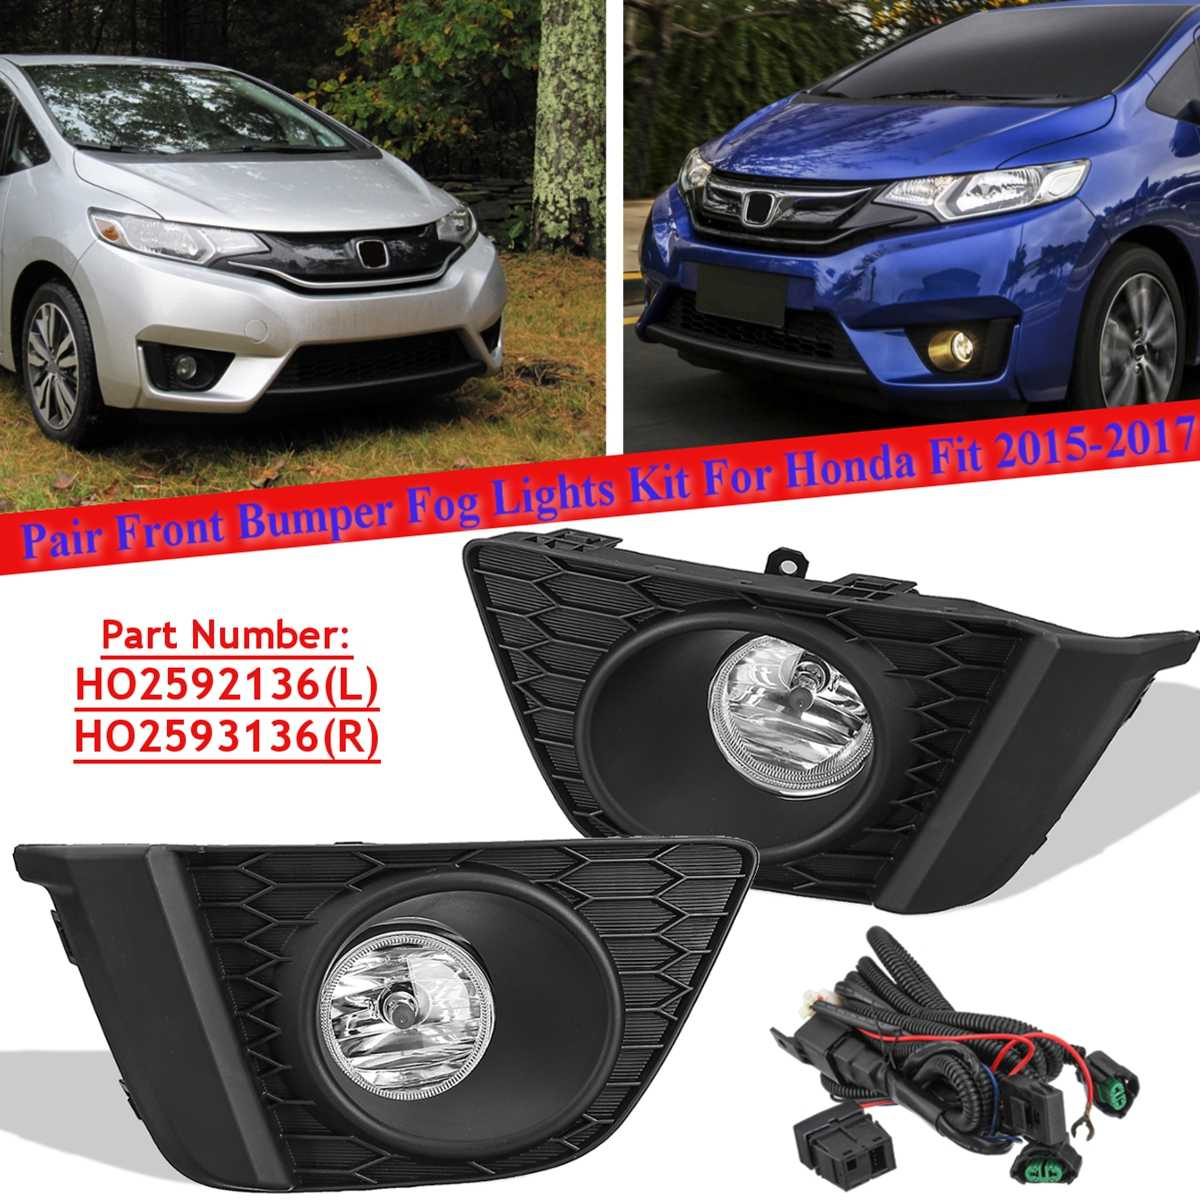 2x 12V Halogen H11 Fog Light Driving Lamp For <font><b>Honda</b></font> <font><b>Fit</b></font> Jazz <font><b>2015</b></font> <font><b>2016</b></font> 2017 With Bulb US Model Switch Foglight Lamp Front Bumper image